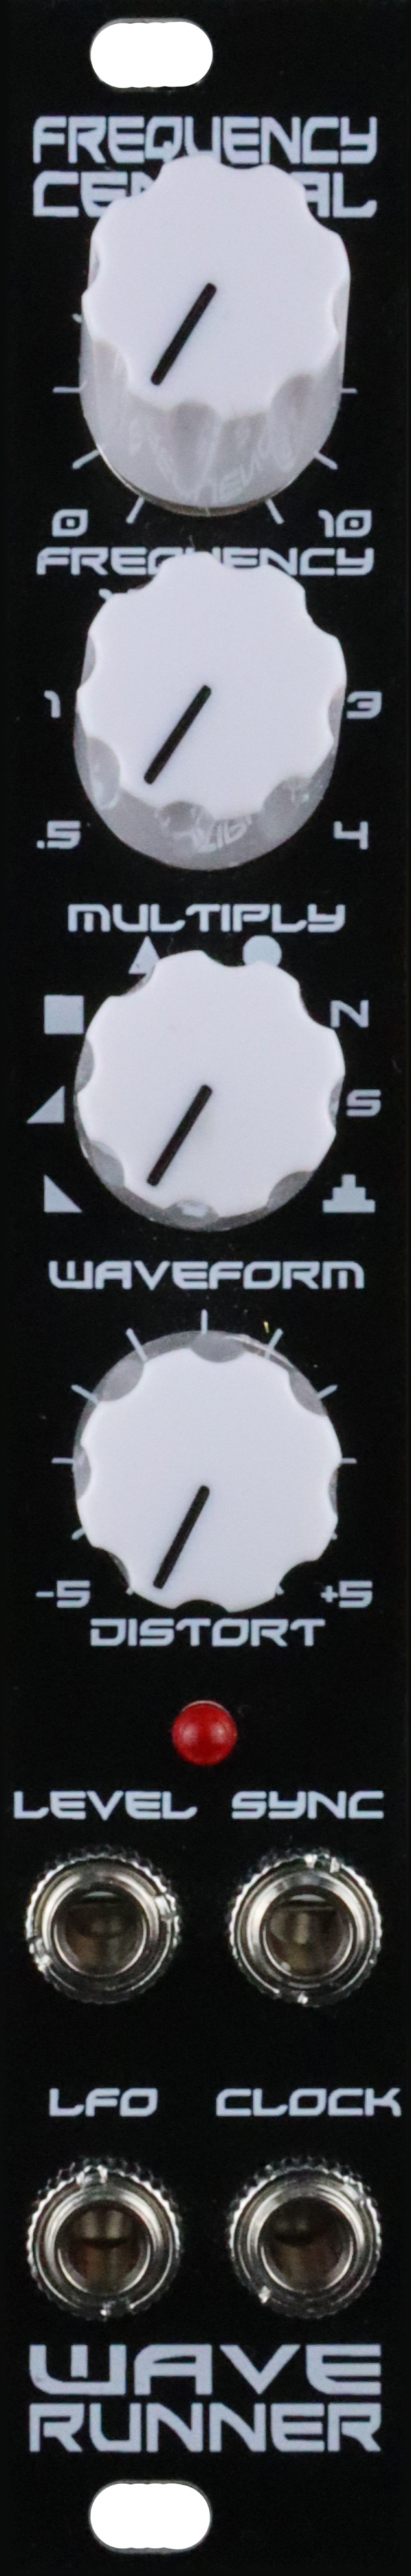 Assembled Frequency Central Wave Runner